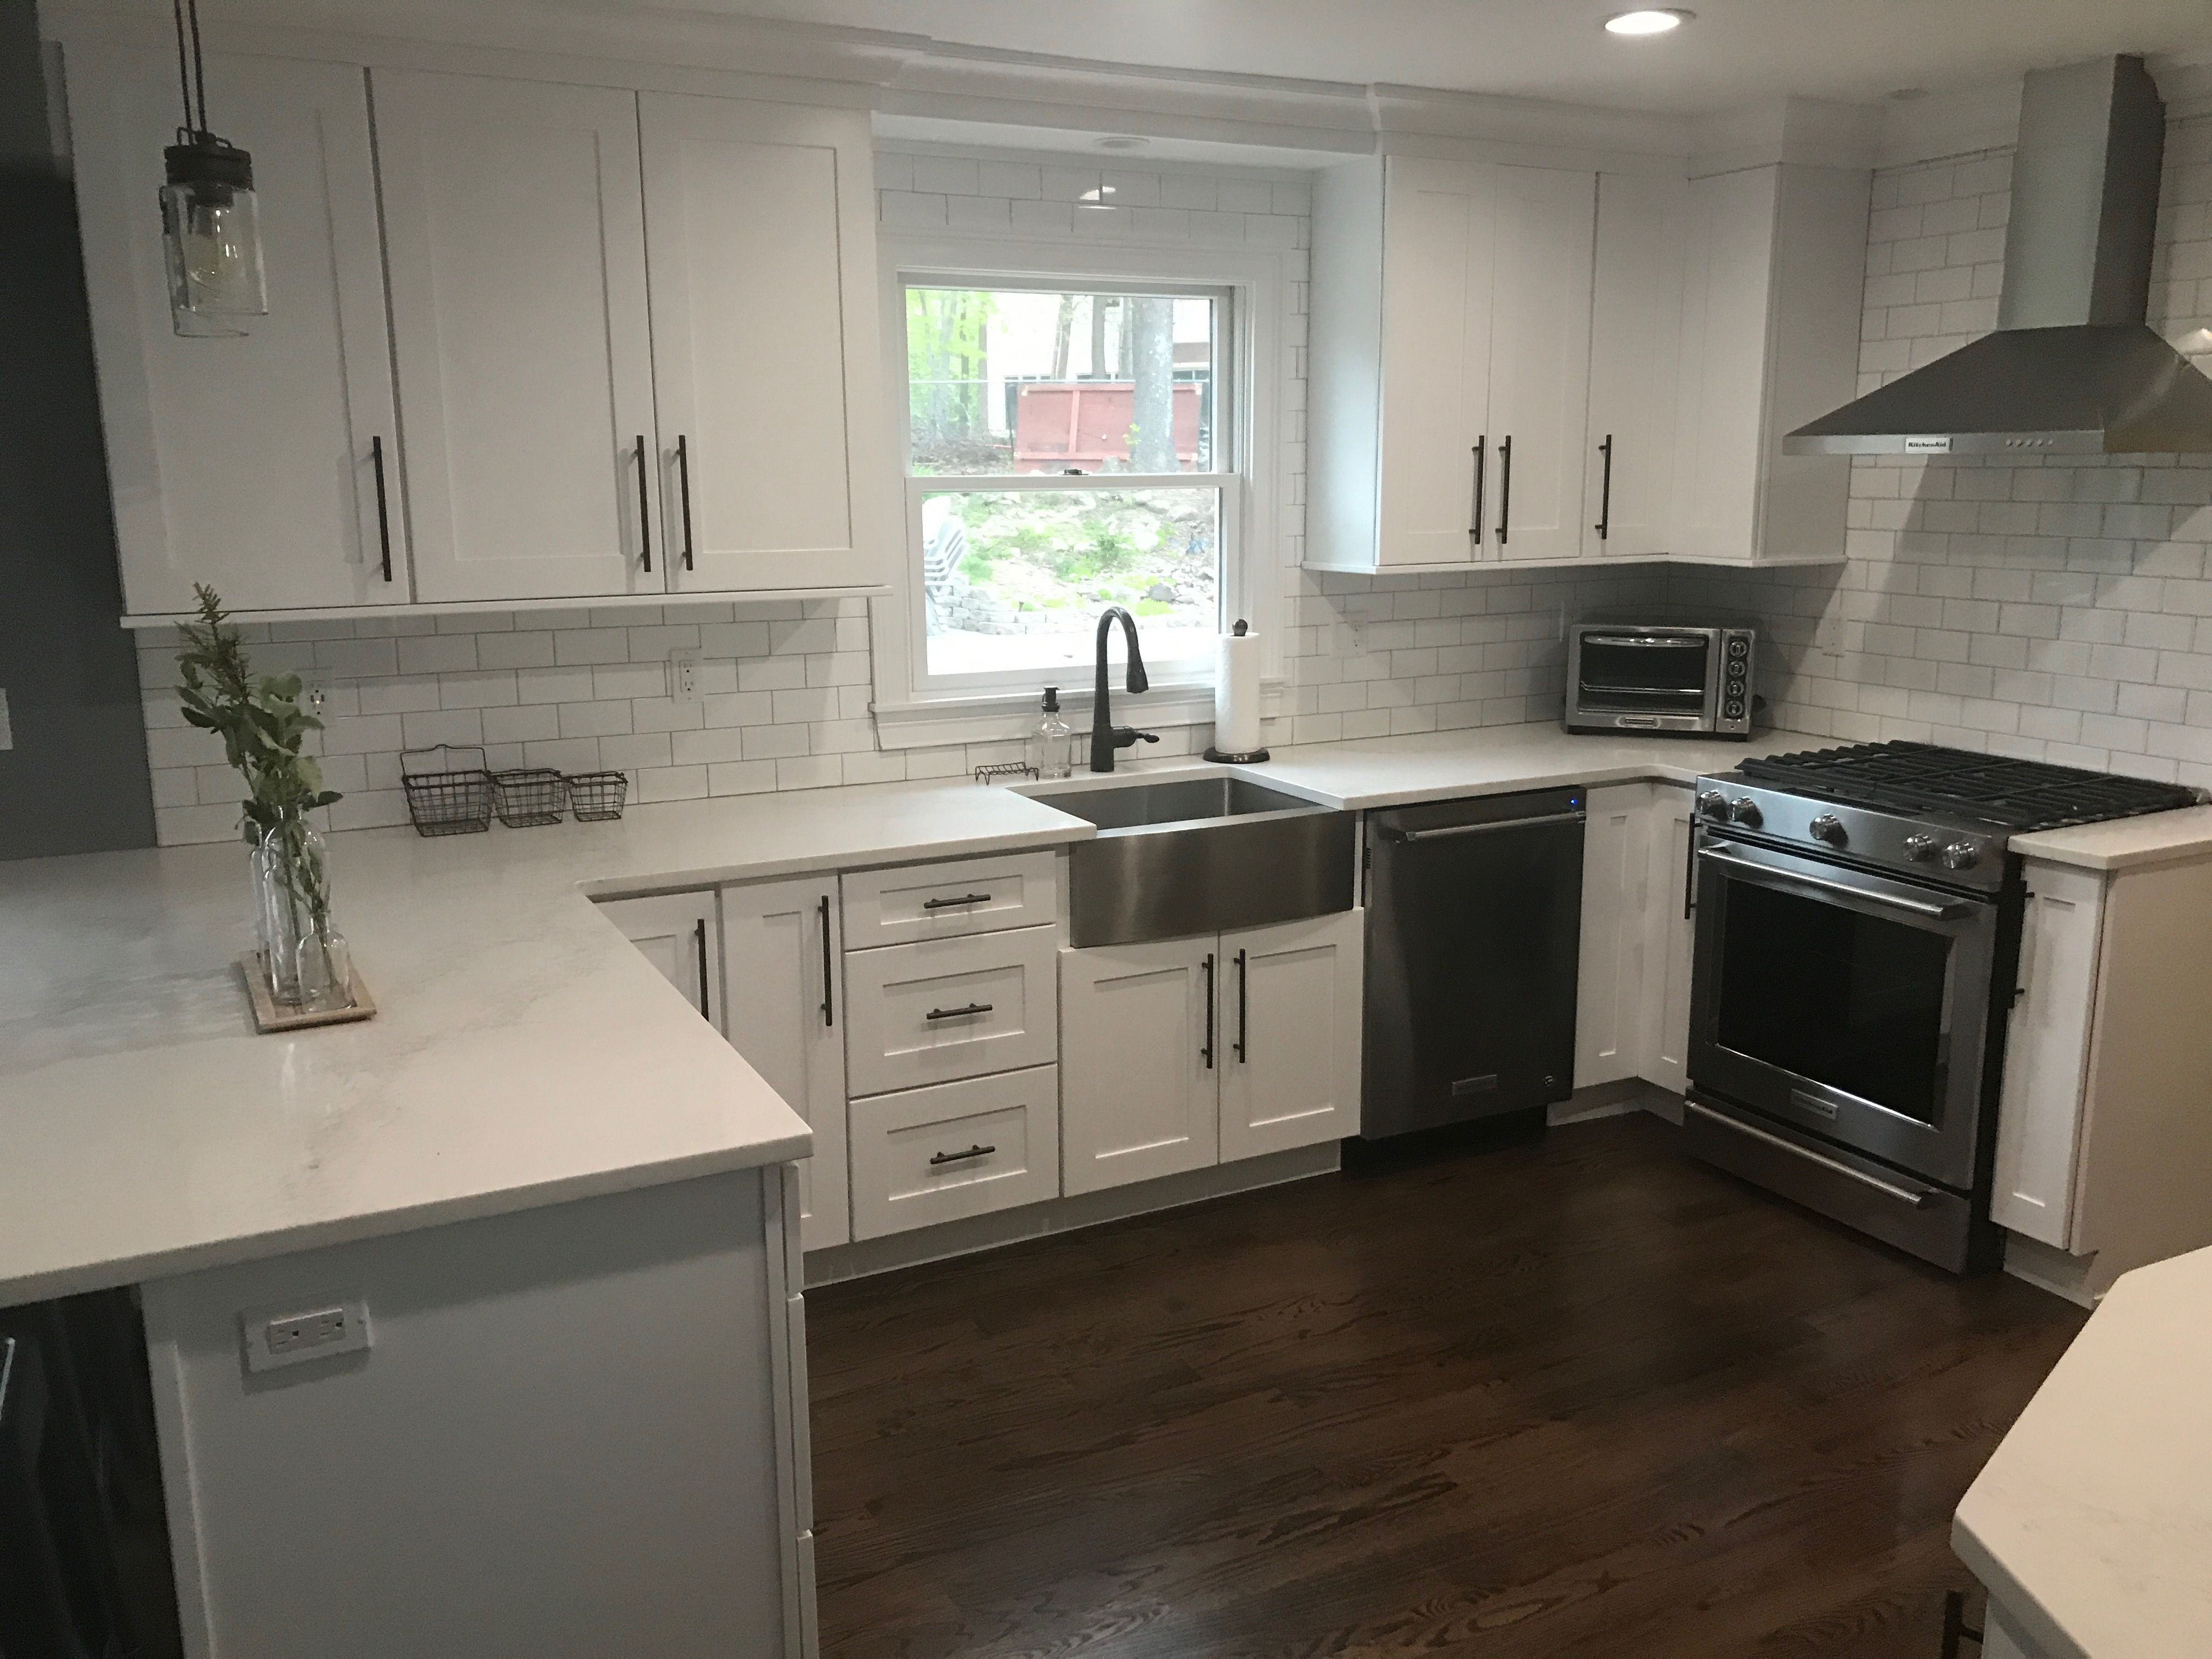 Stainless Steel Appliances And Farm Sink Oil Rubbed Bronze Hardware